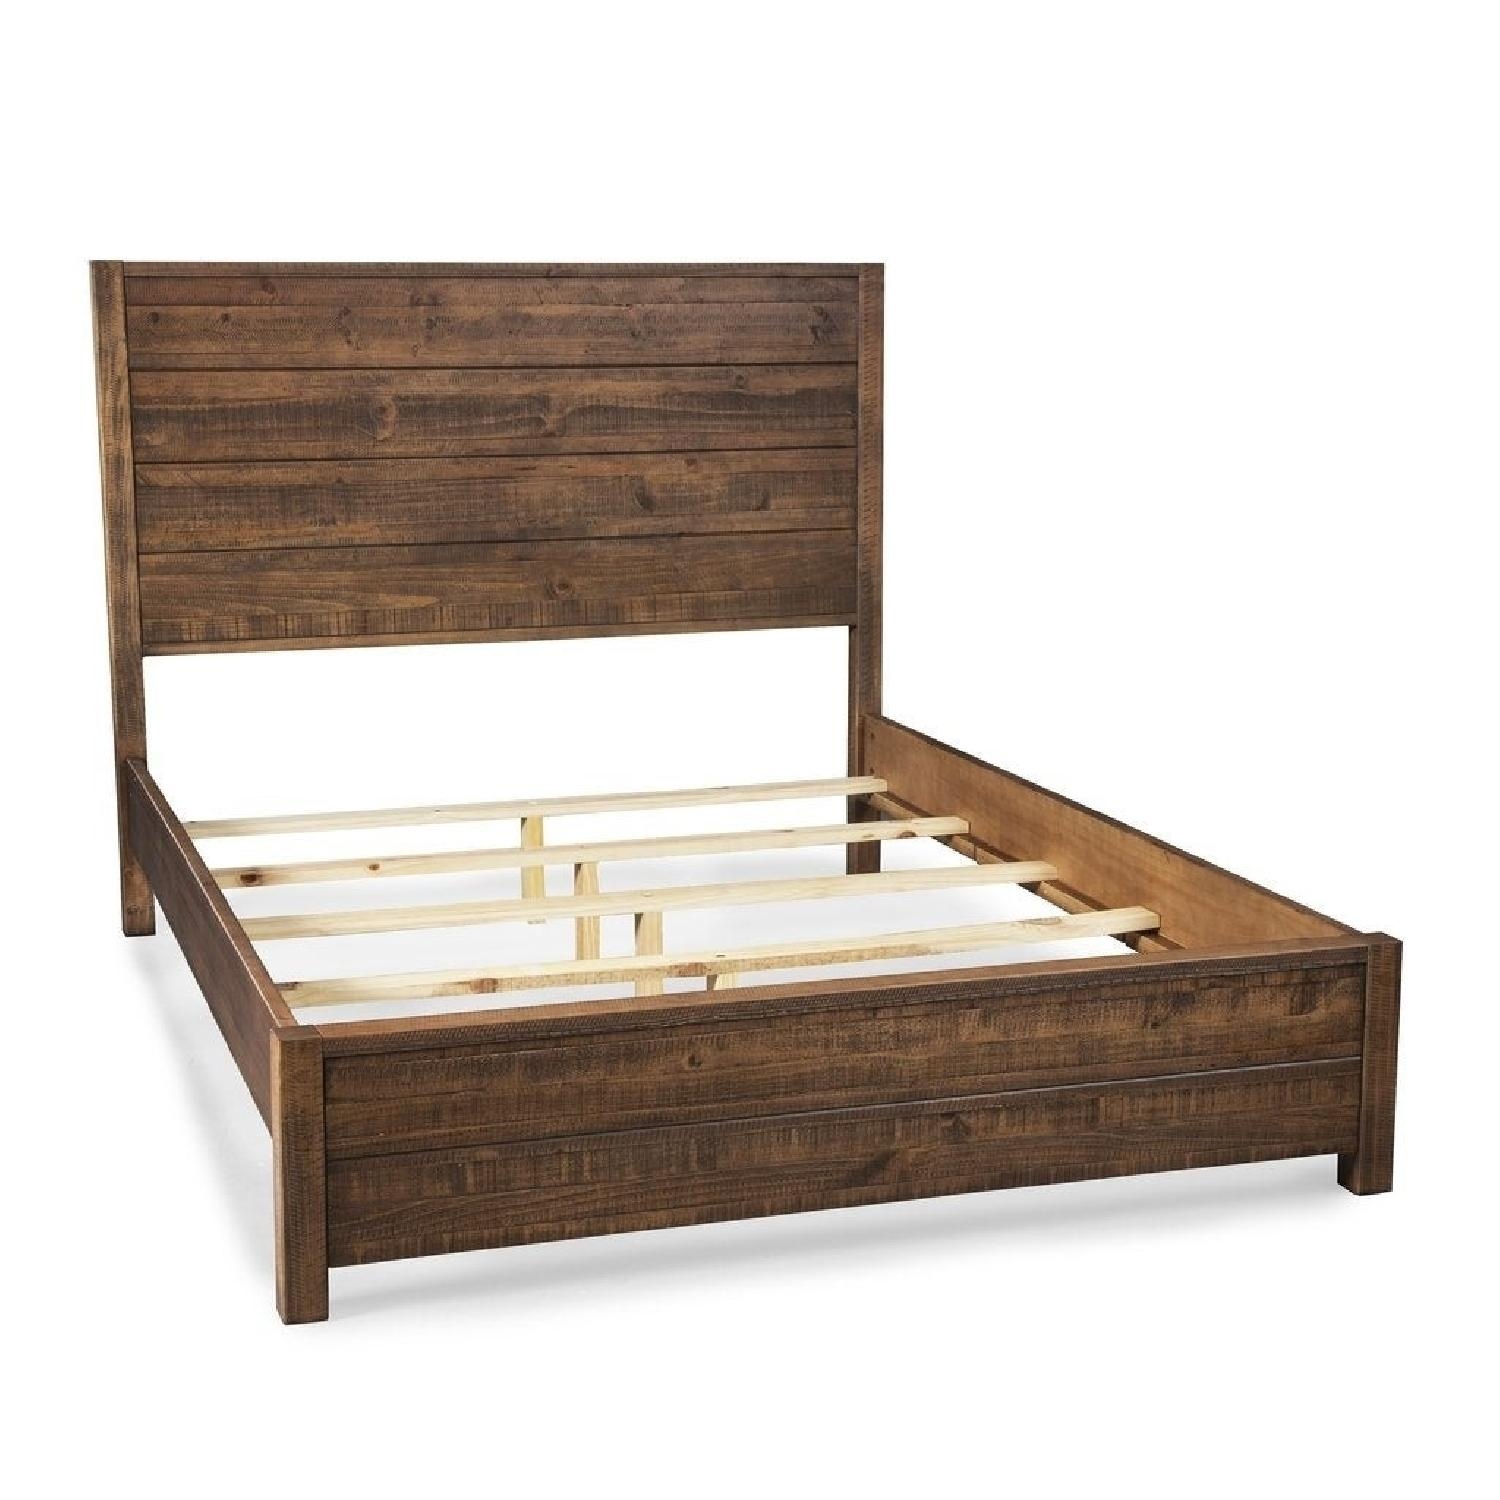 Grain Wood Furniture Rustic Style Queen Size Bed Frame - image-0